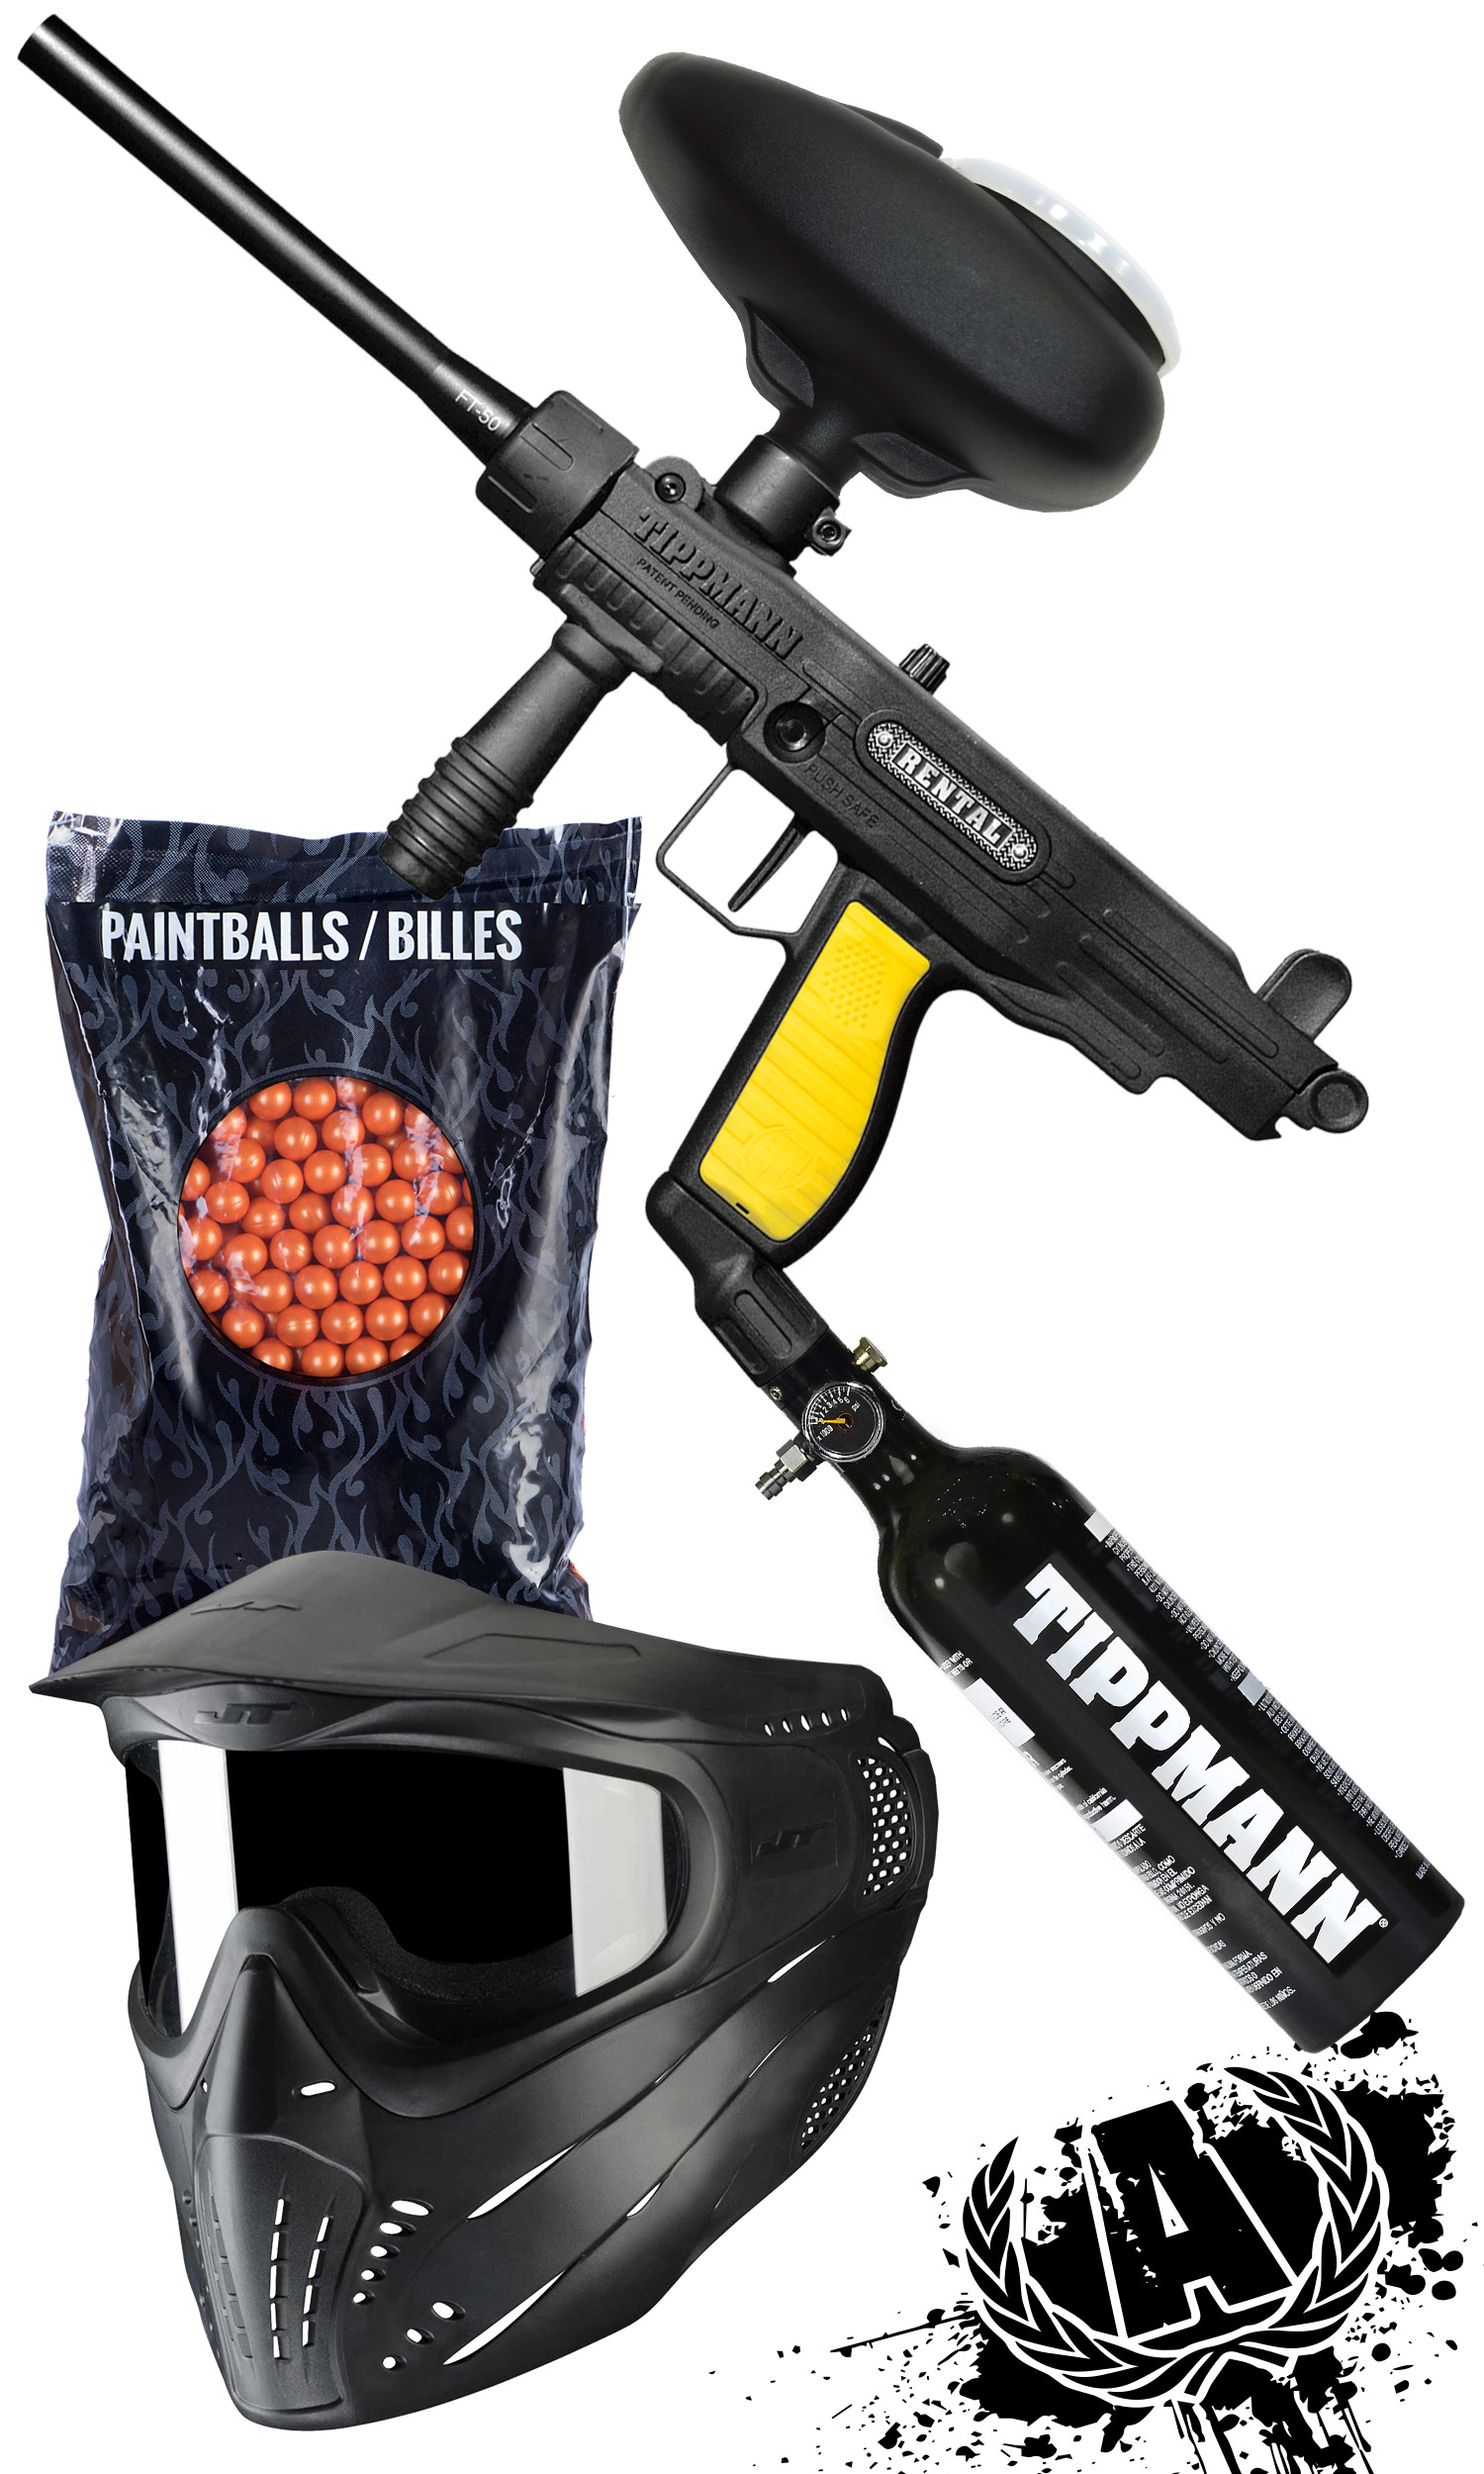 Includes, all day entry, all day air, paintball marker, hopper, air tank, mask, and 500 rounds of paintballs - PremiumPackage$39.99